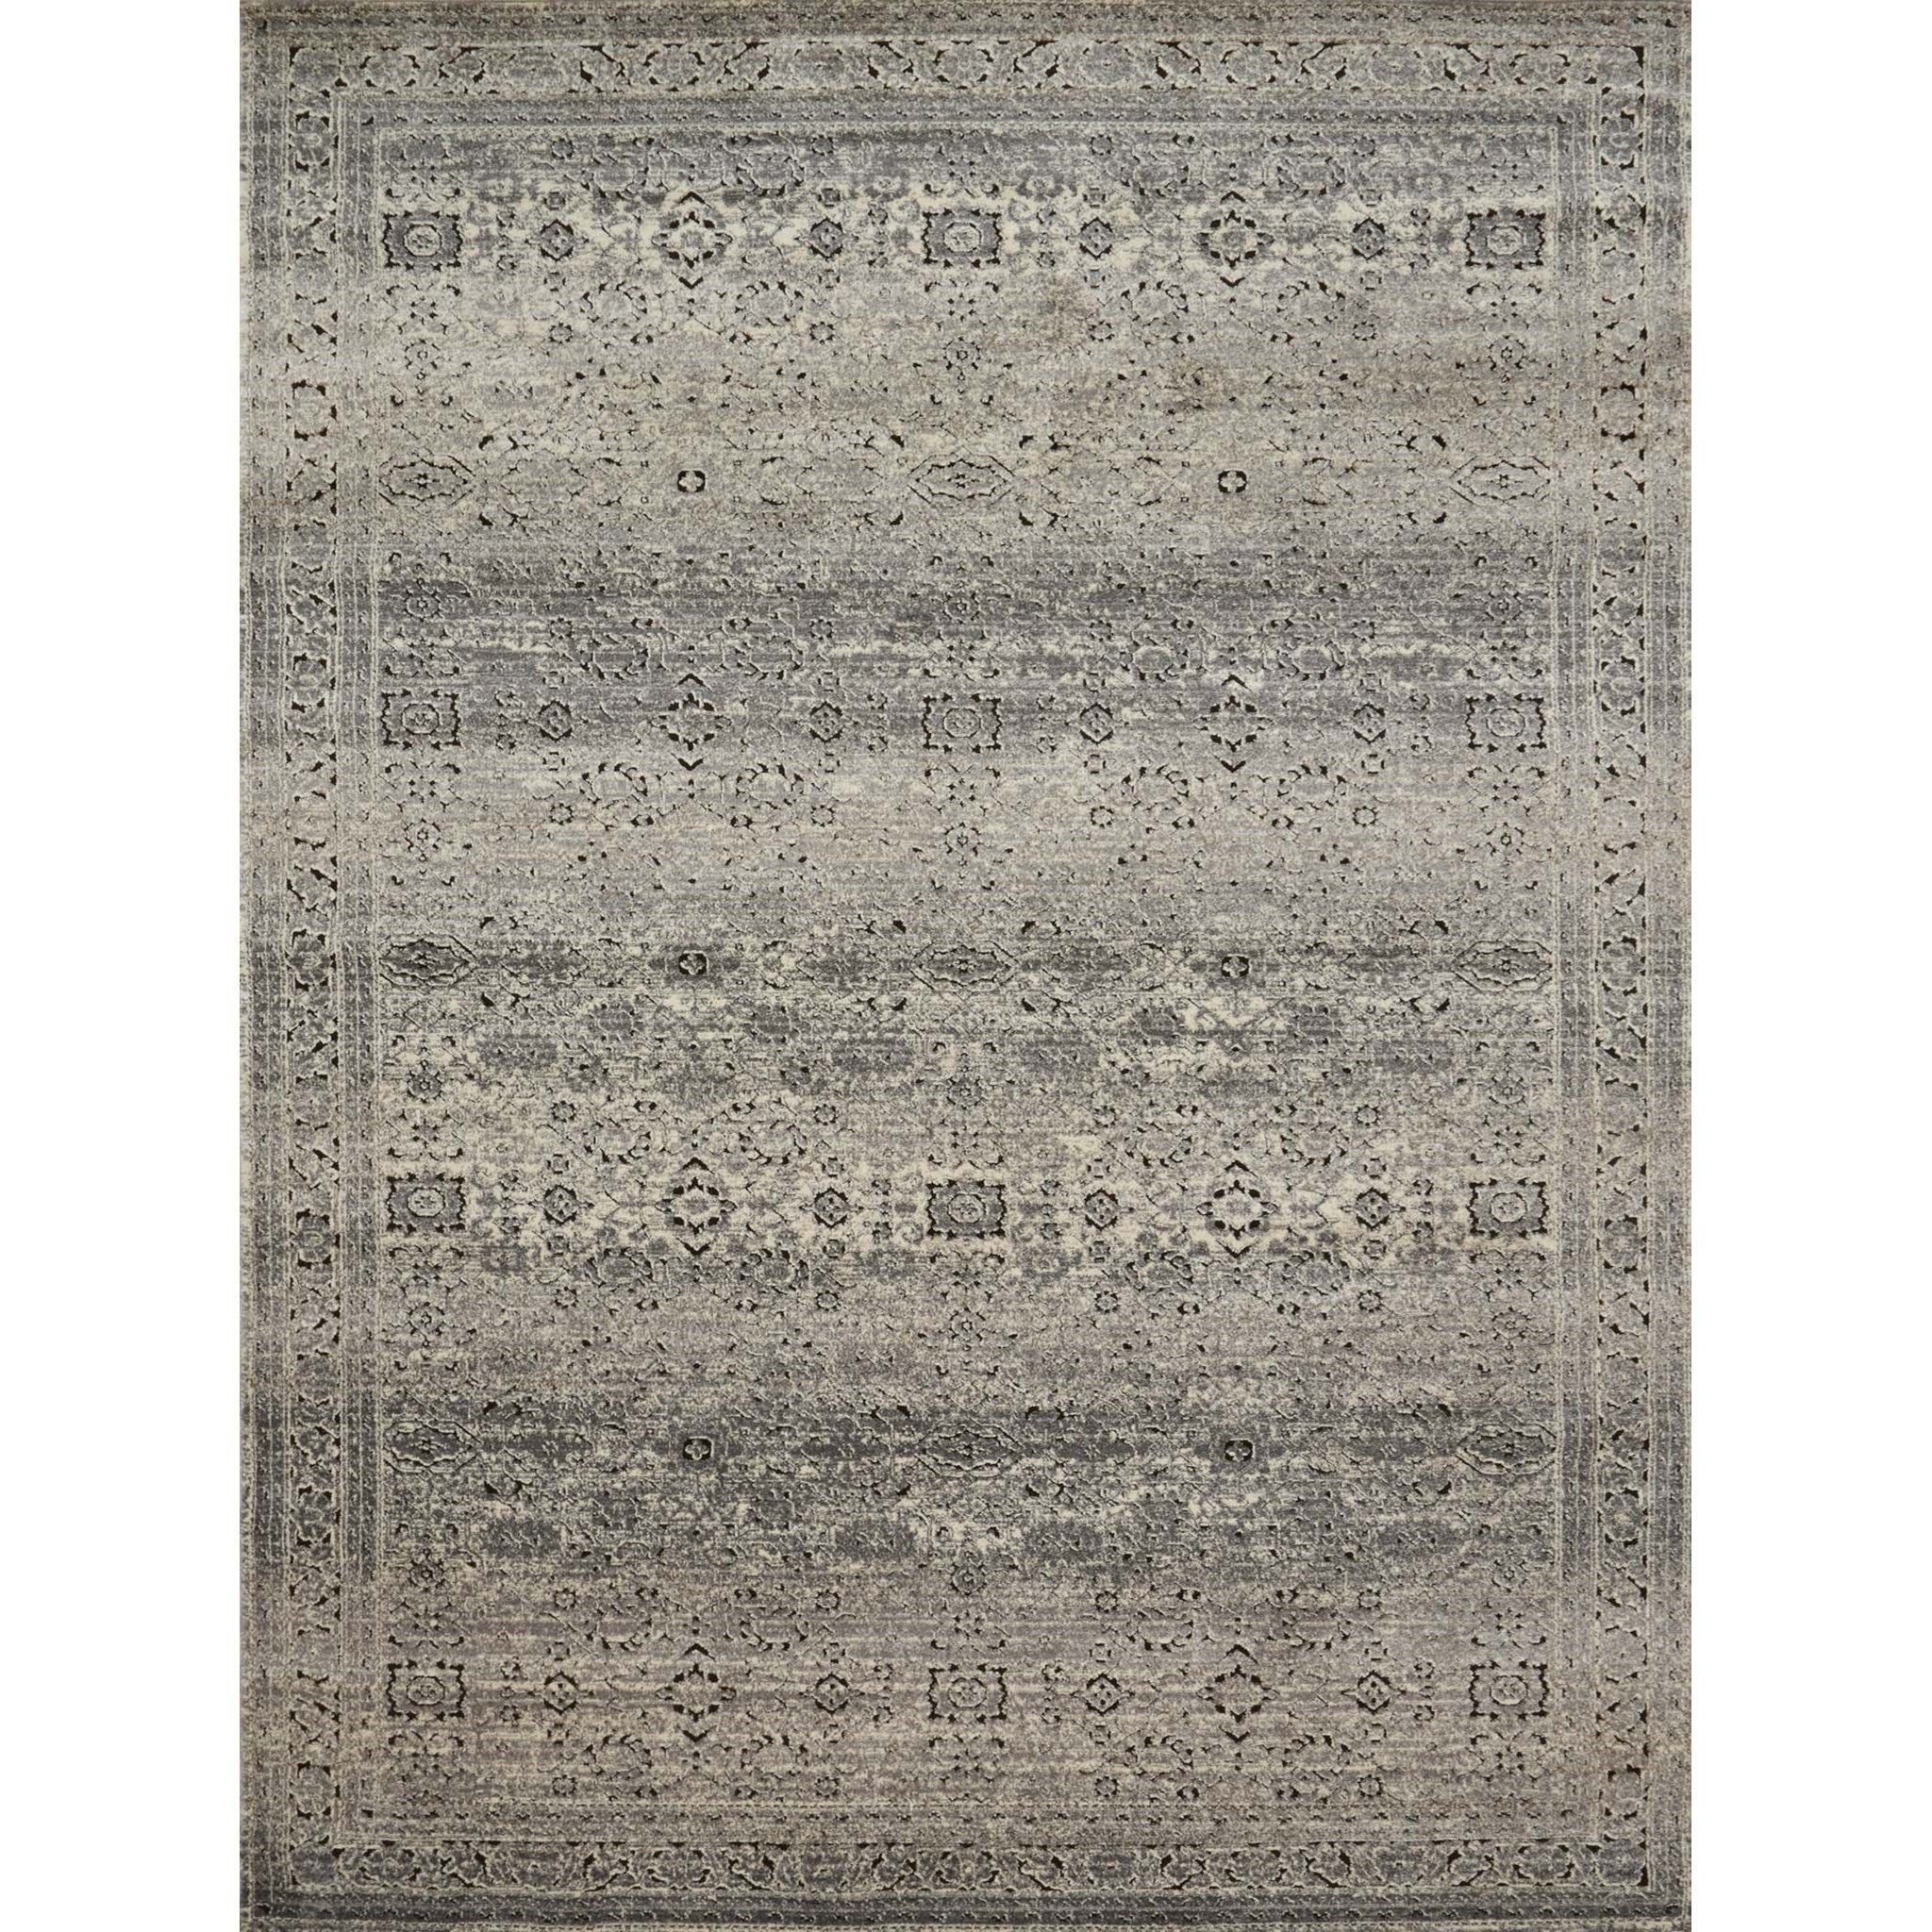 "Millennium 6'-7"" X 9'-2"" Area Rug by Loloi Rugs at Virginia Furniture Market"